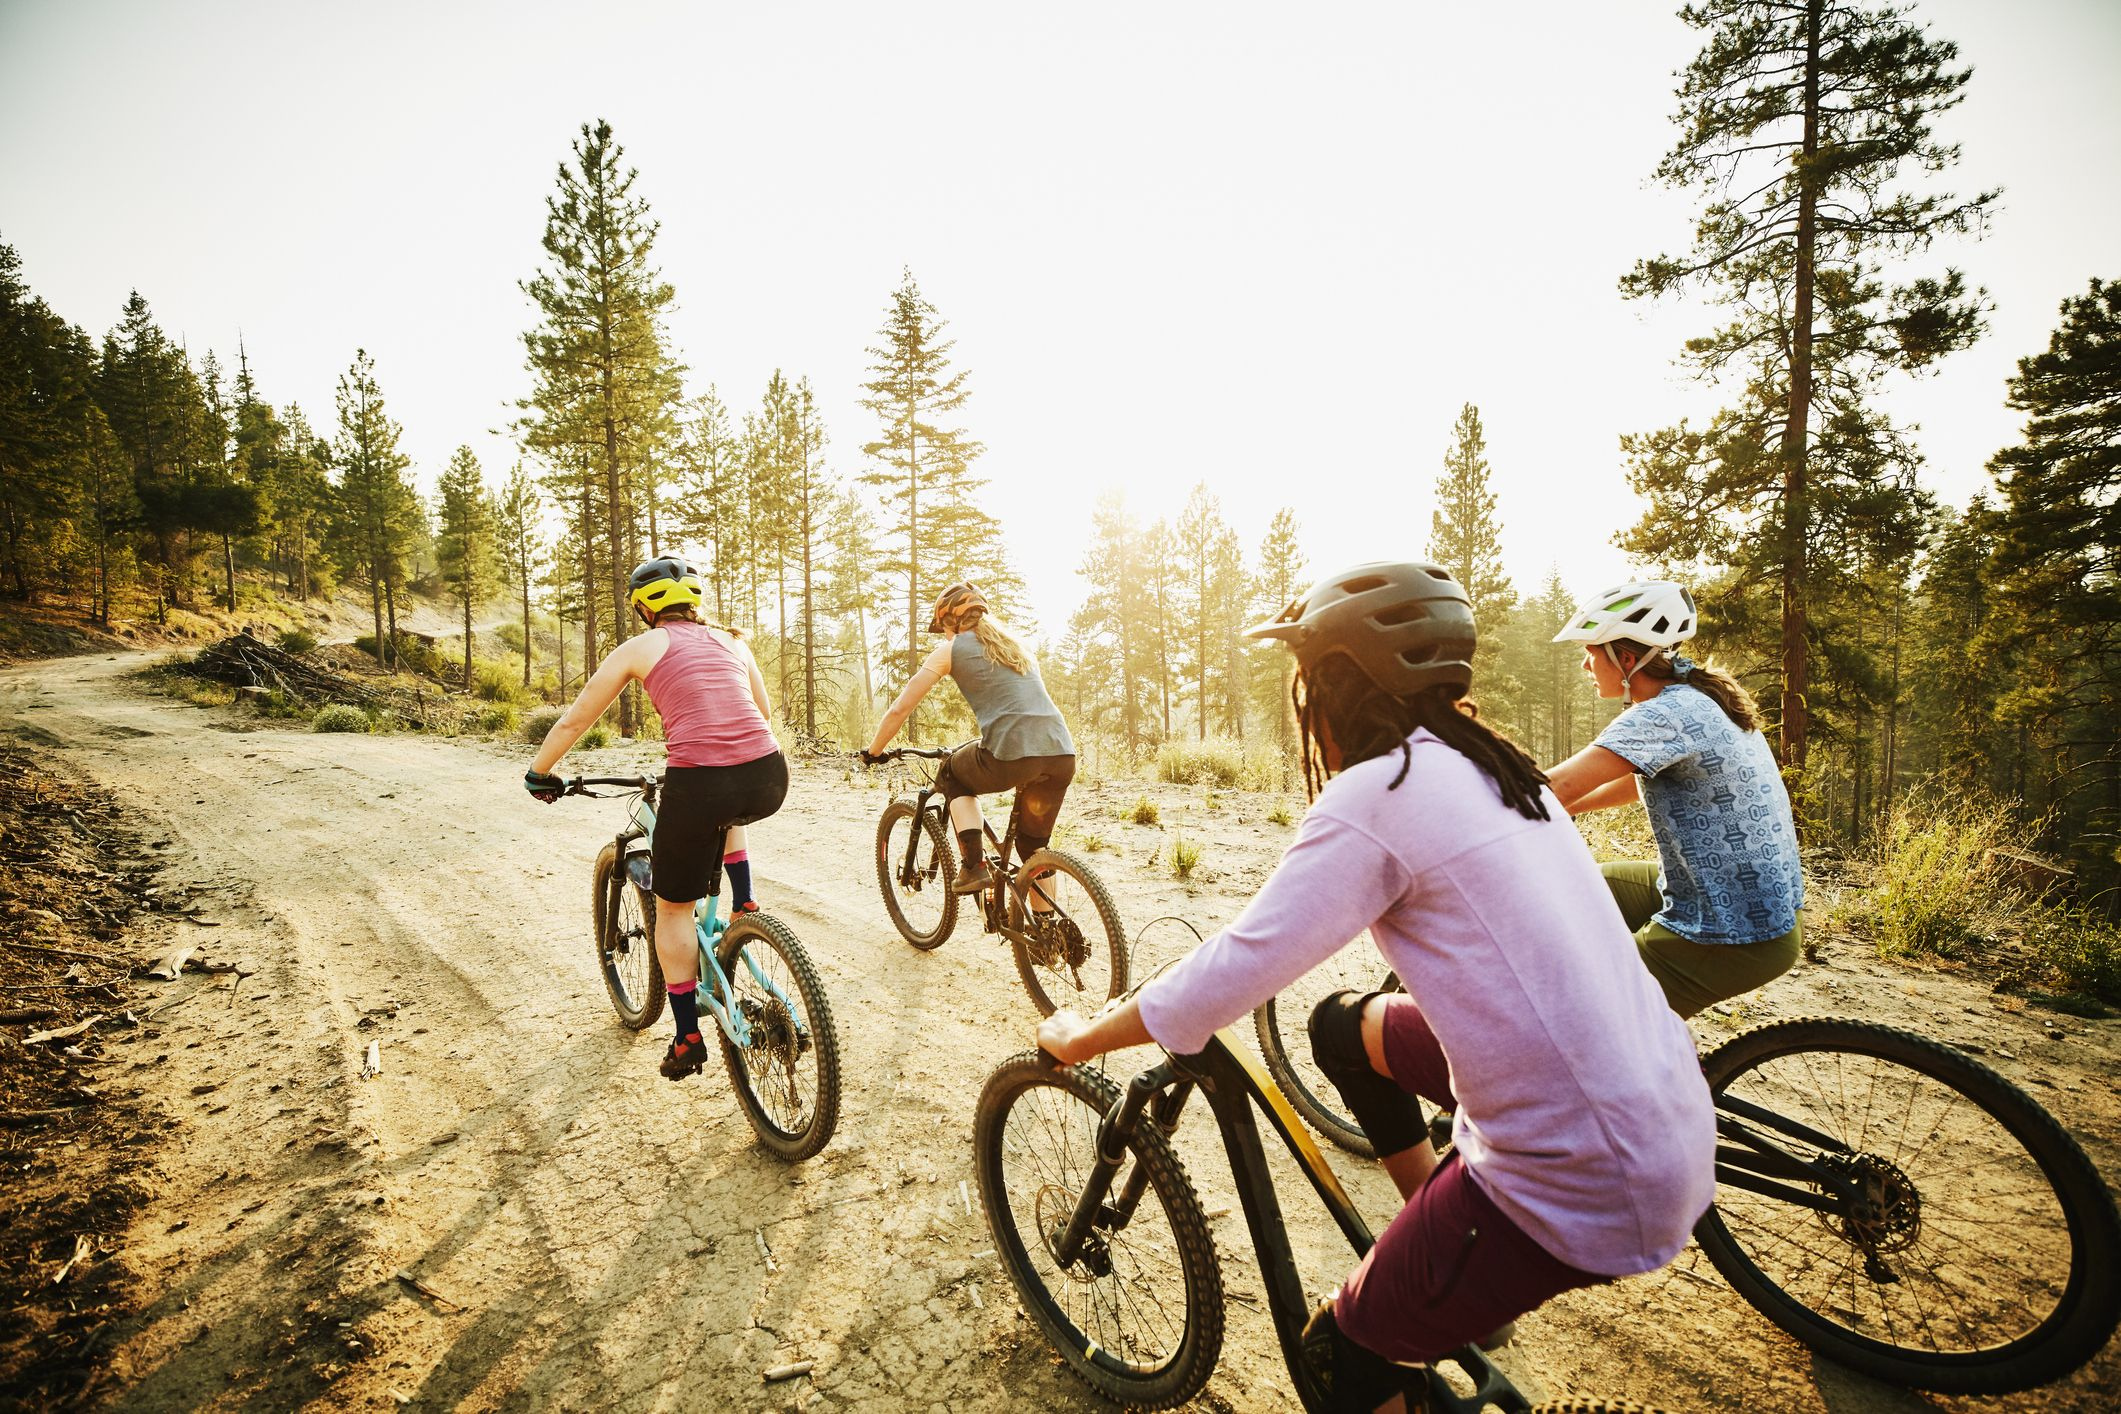 Is It Safe to Ride in Groups Again? | Cycling During COVID